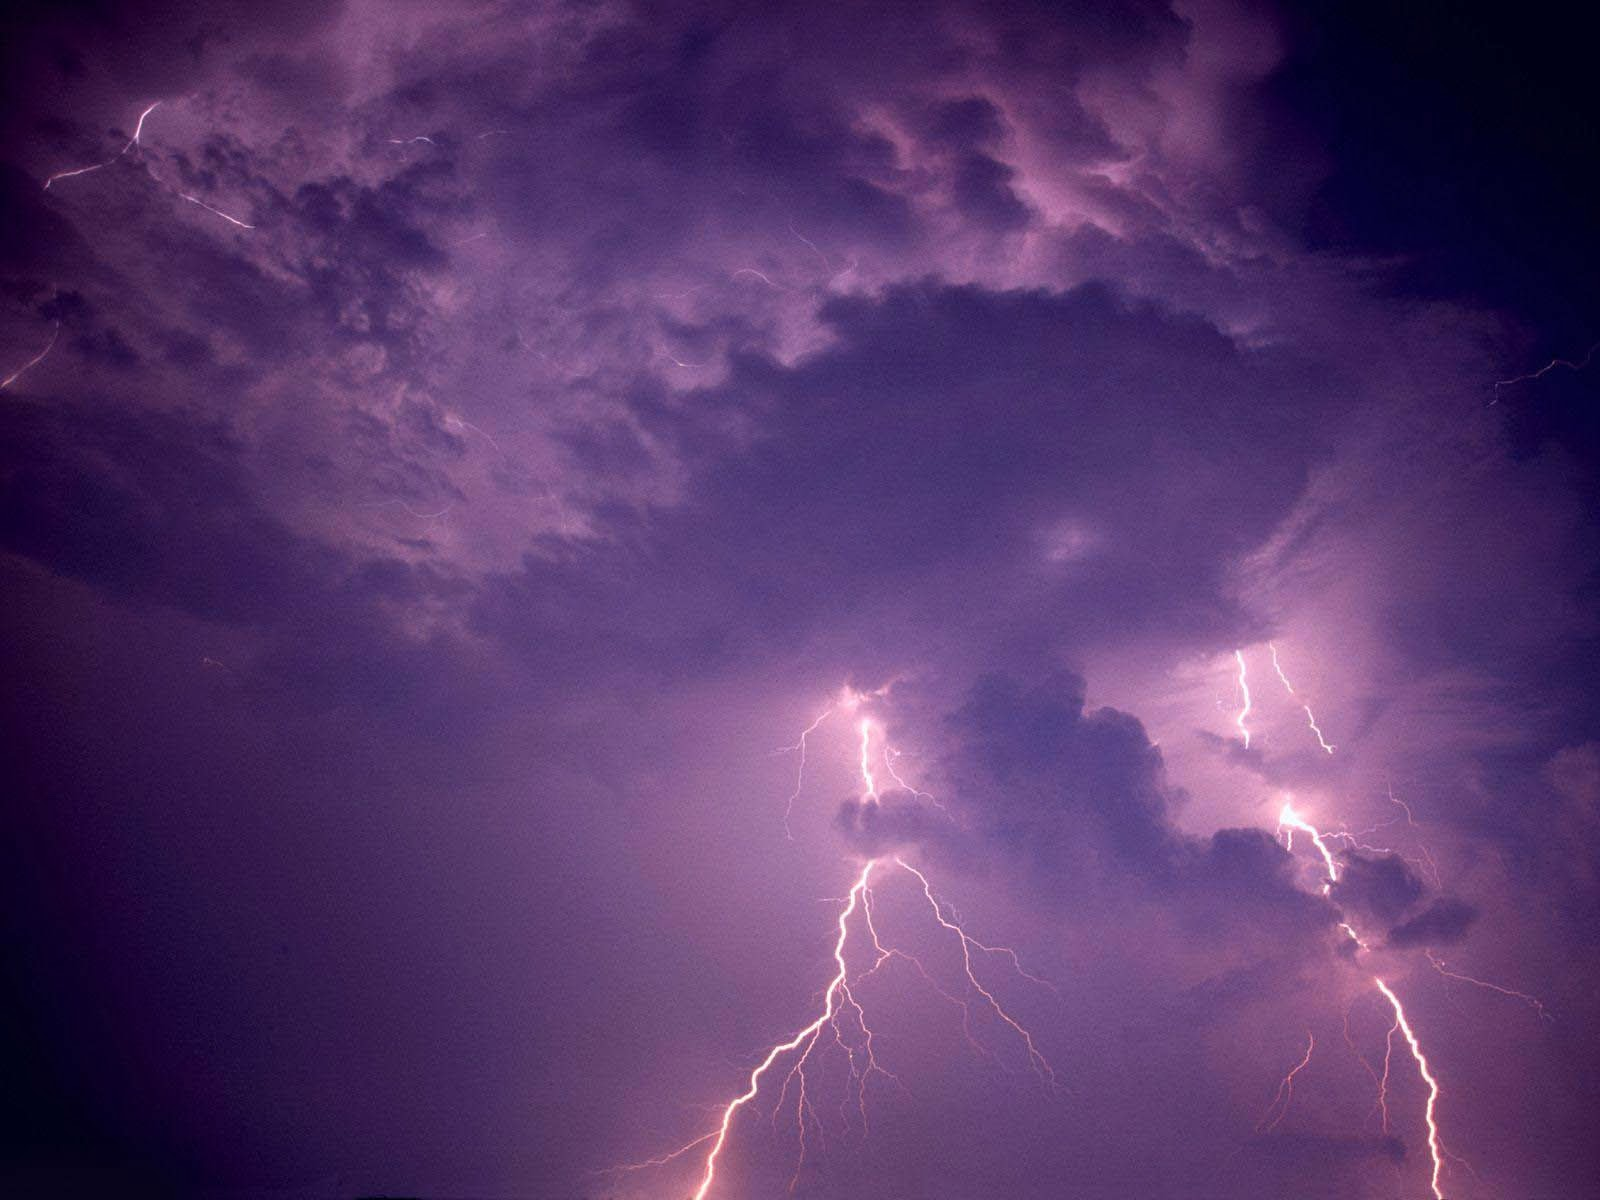 Beautiful Wallpapers For Desktop sky lightning wallpapers hd 1600x1200